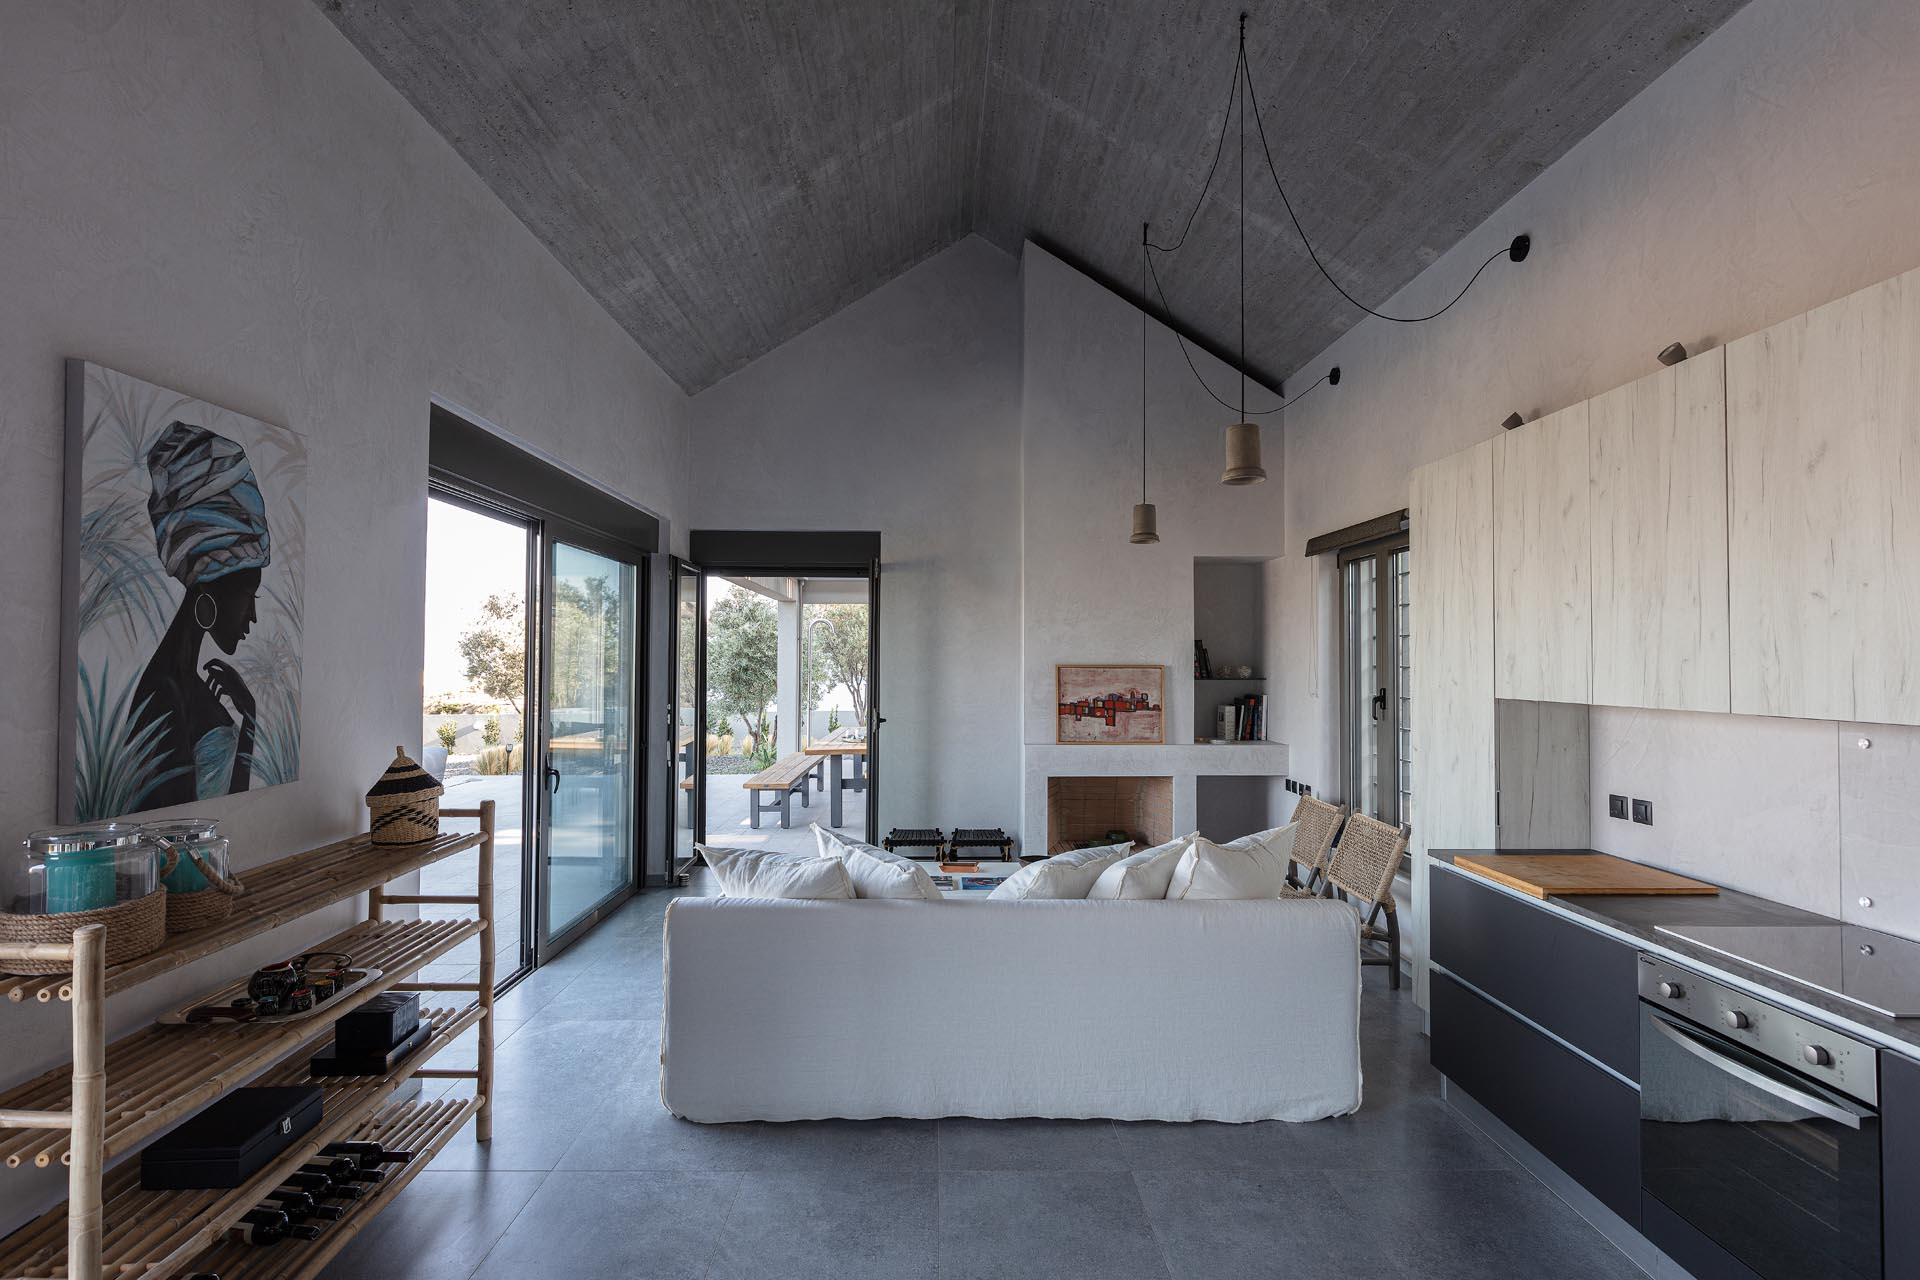 A modern open plan living room and kitchen with a pitched ceiling and doors that open to a terrace.